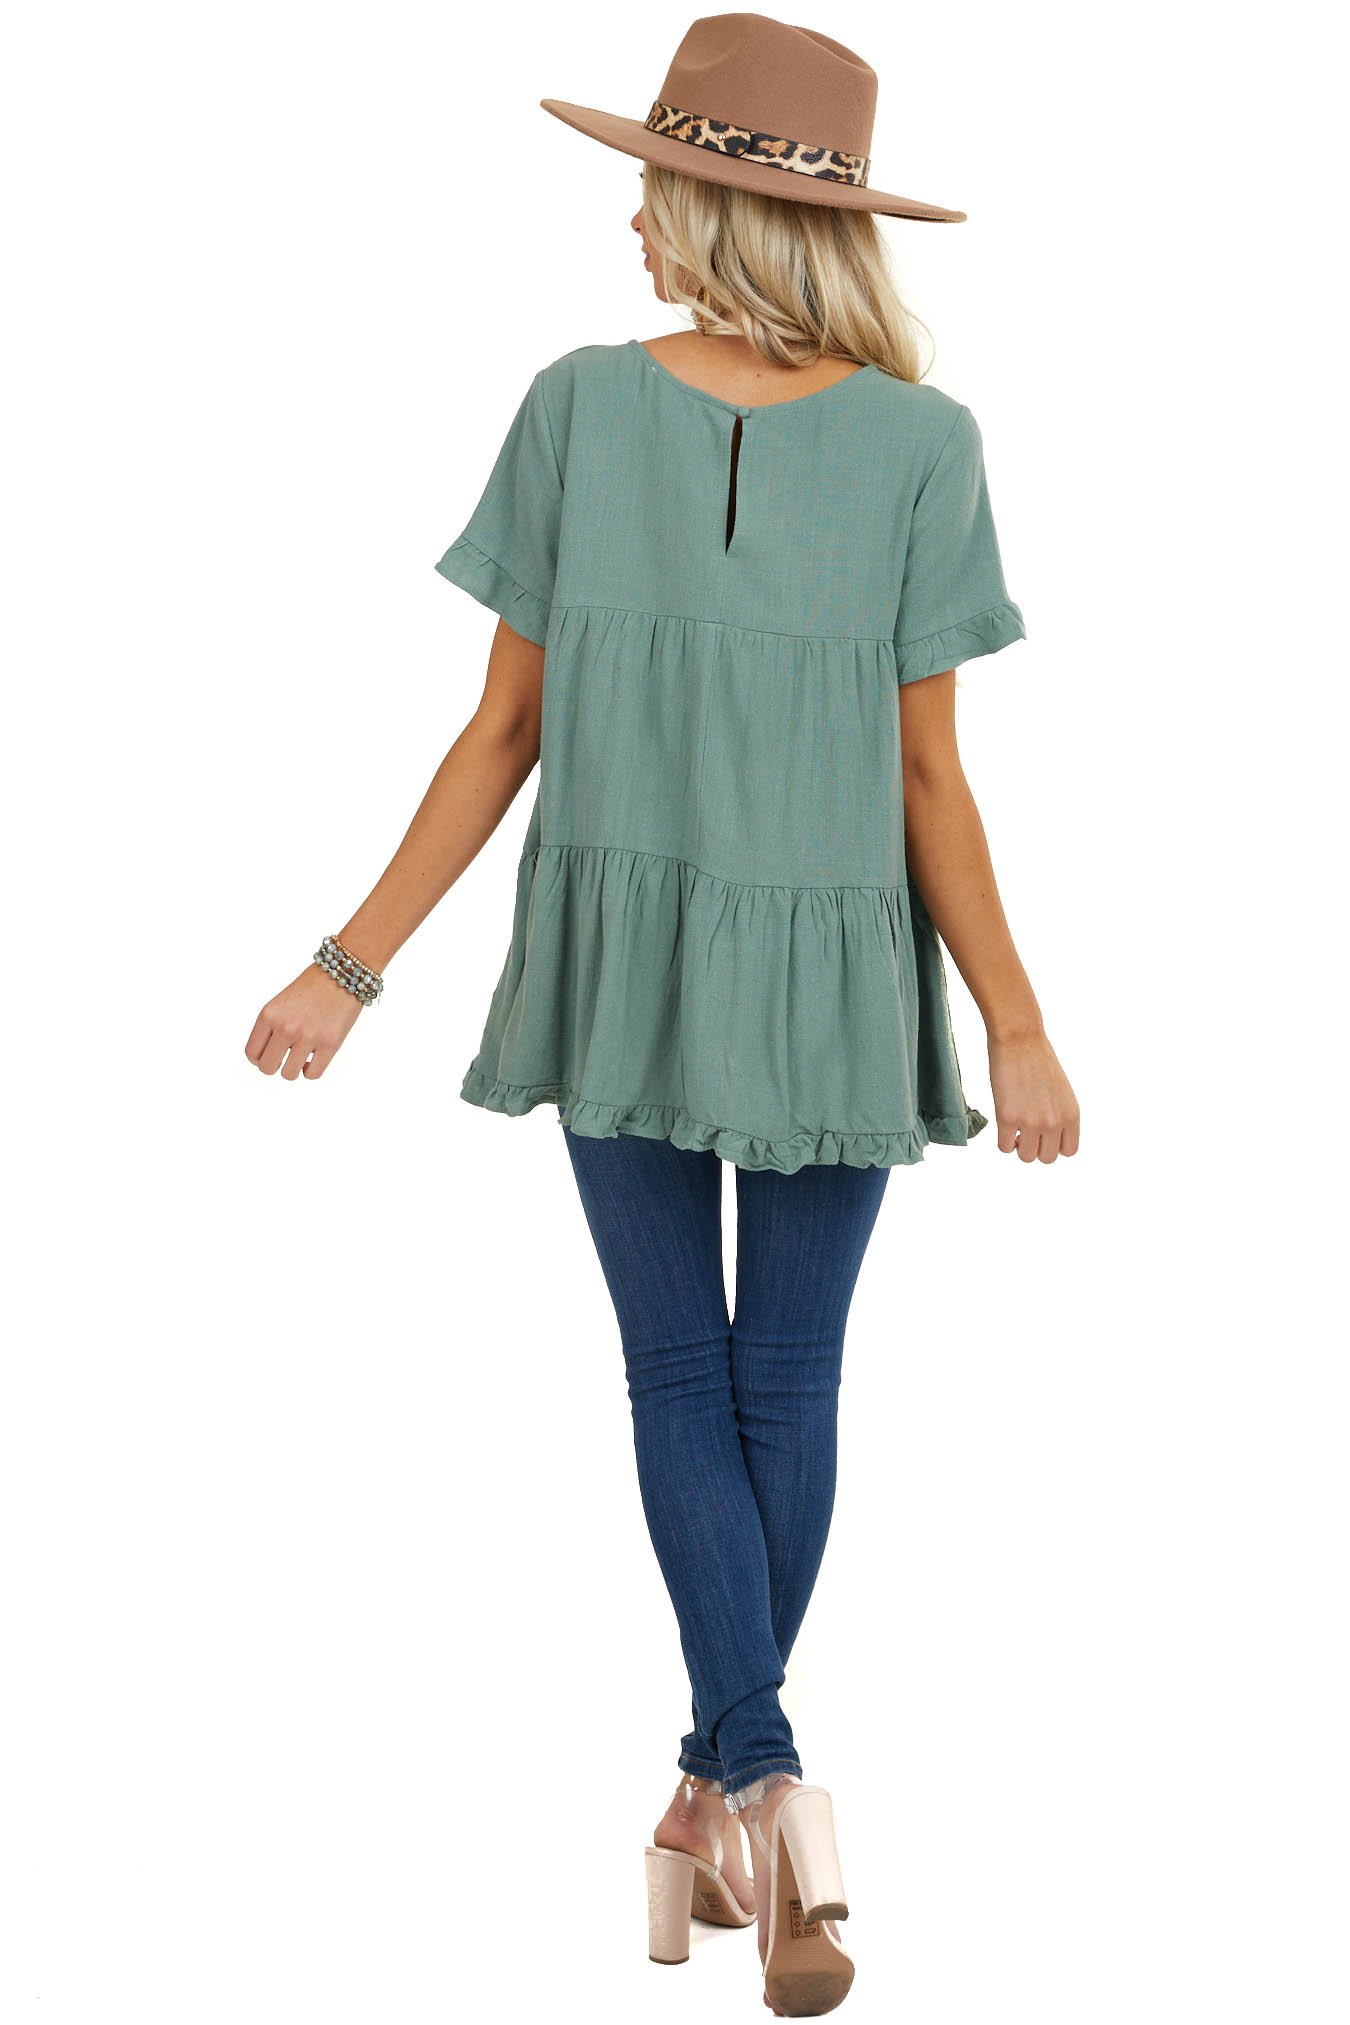 Dusty Sage Tiered Woven Top with Short Ruffled Sleeves